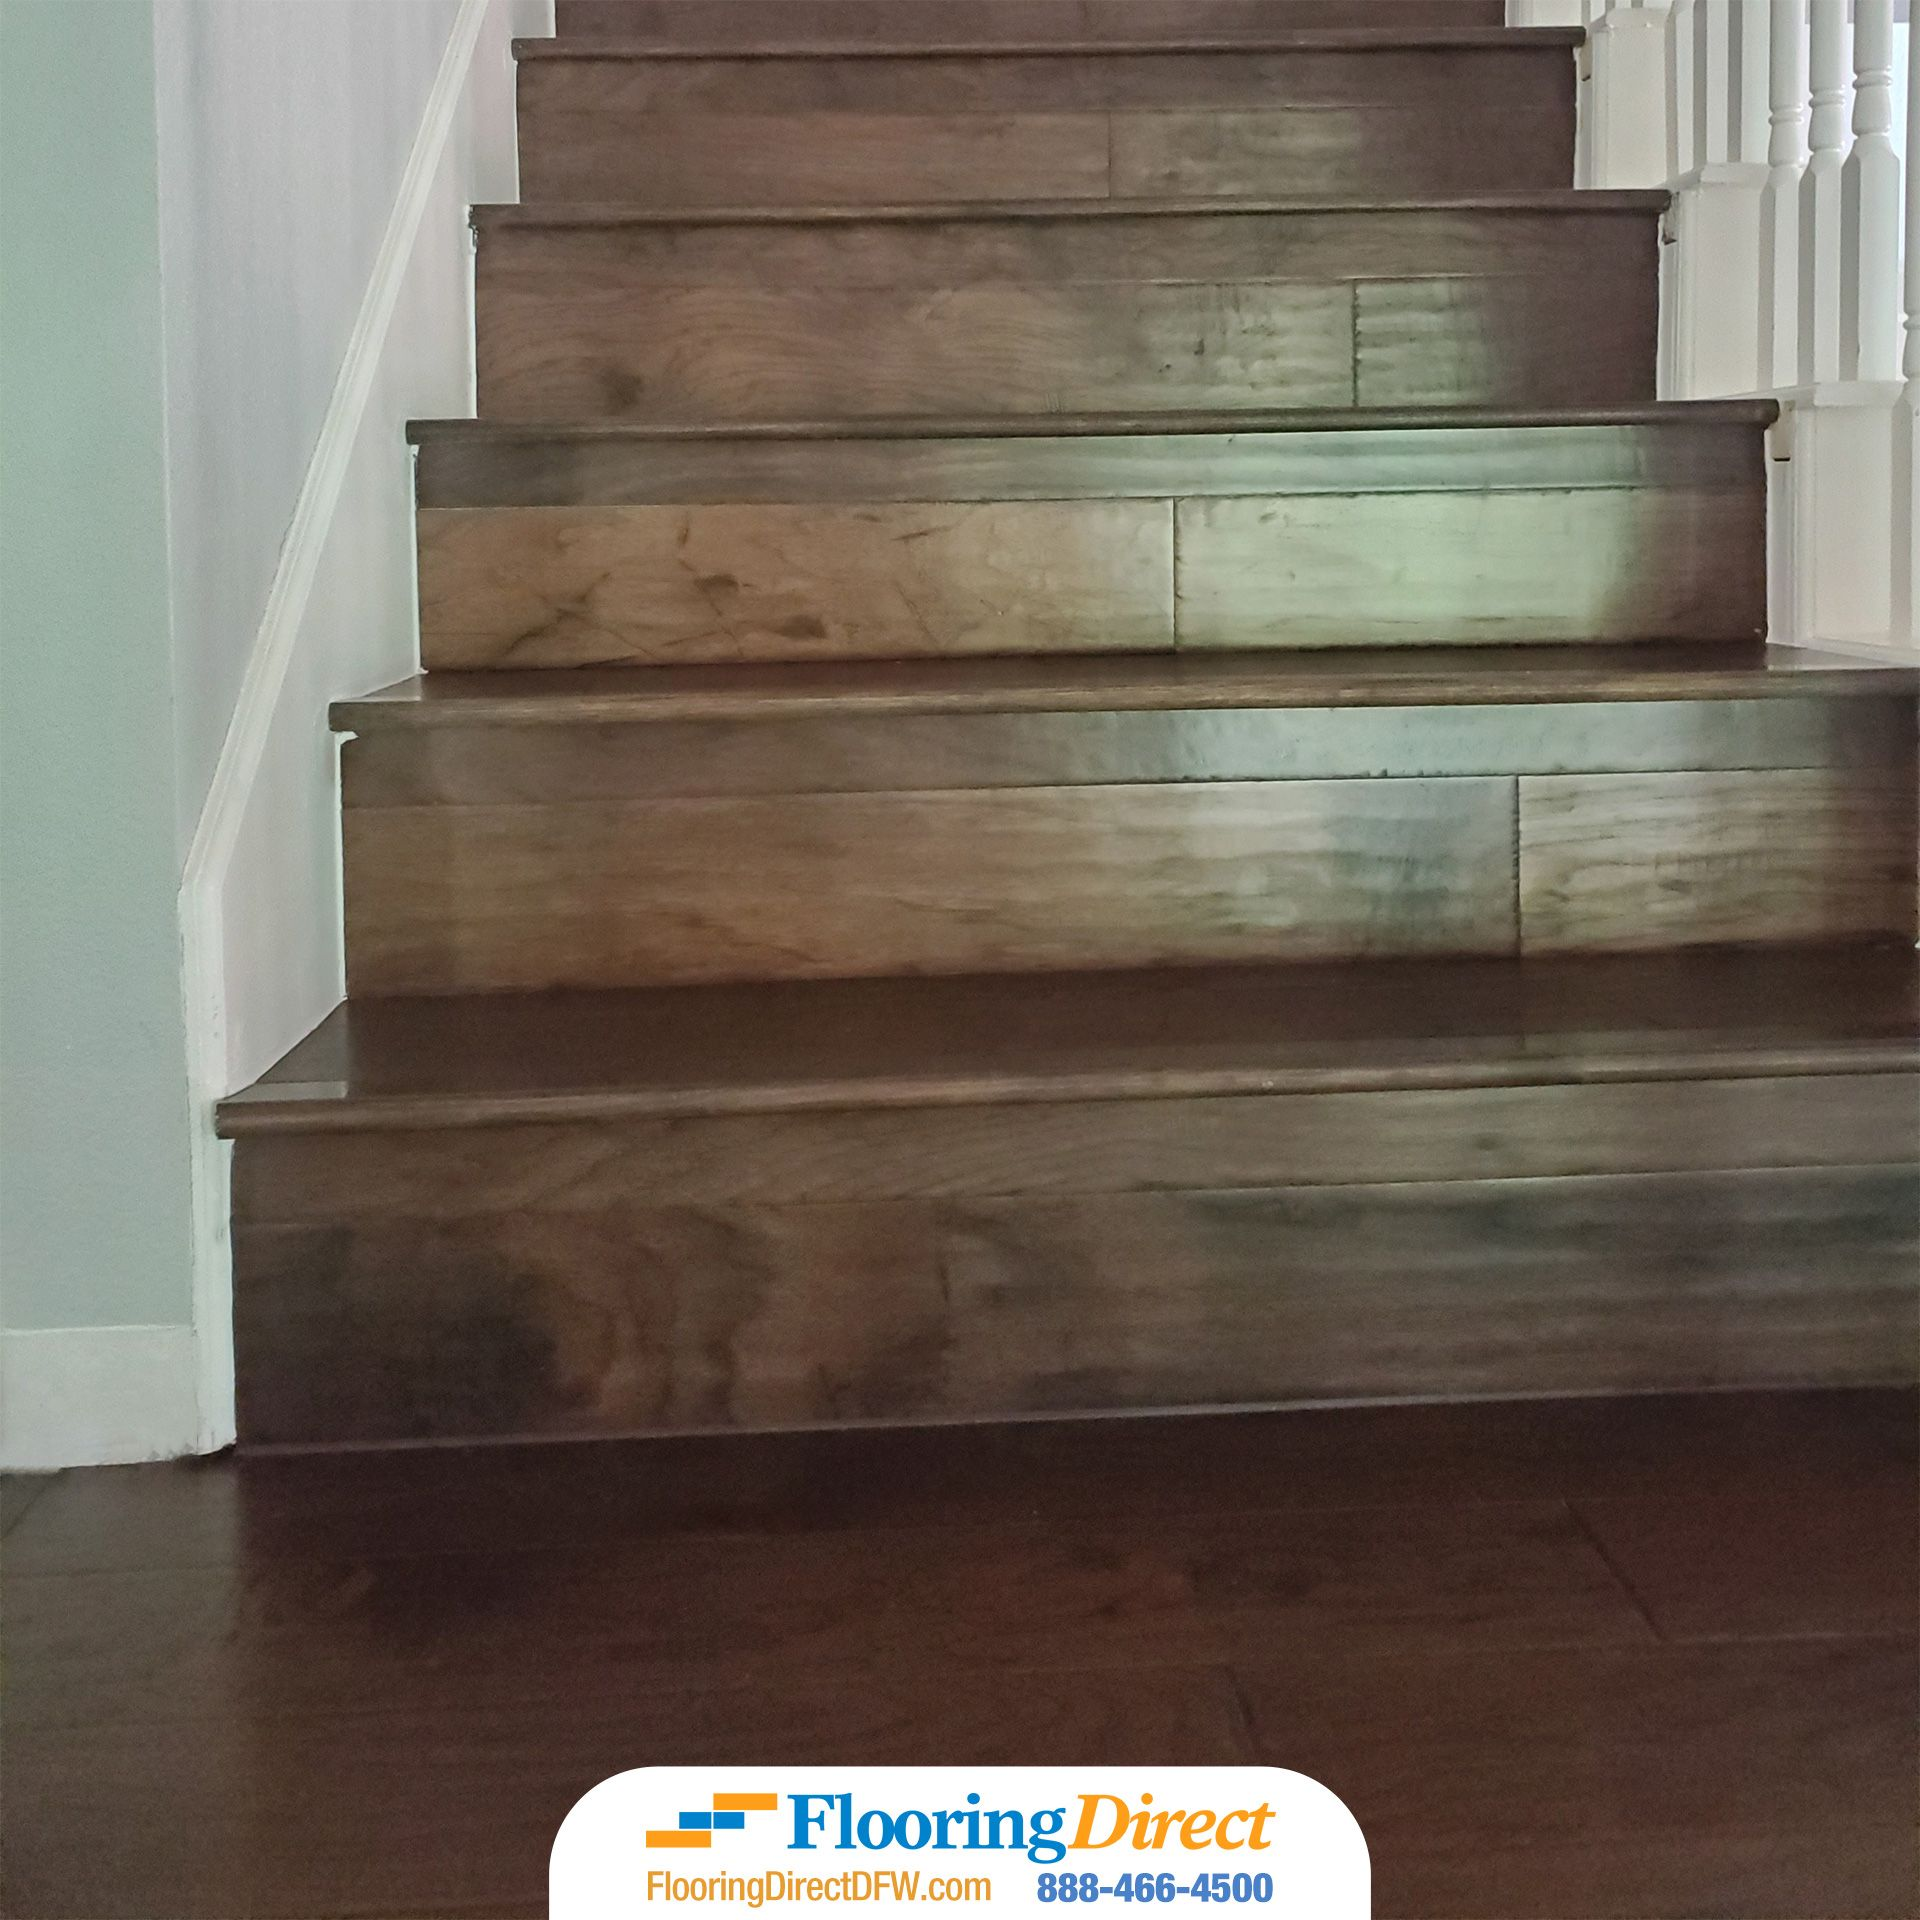 Attention To Detail In 2020 Floors Direct Hardwood Floors   Wood Floors And Stairs Direct   Wide Plank   Floor Covering   Brazilian Cherry   Installation   Maple